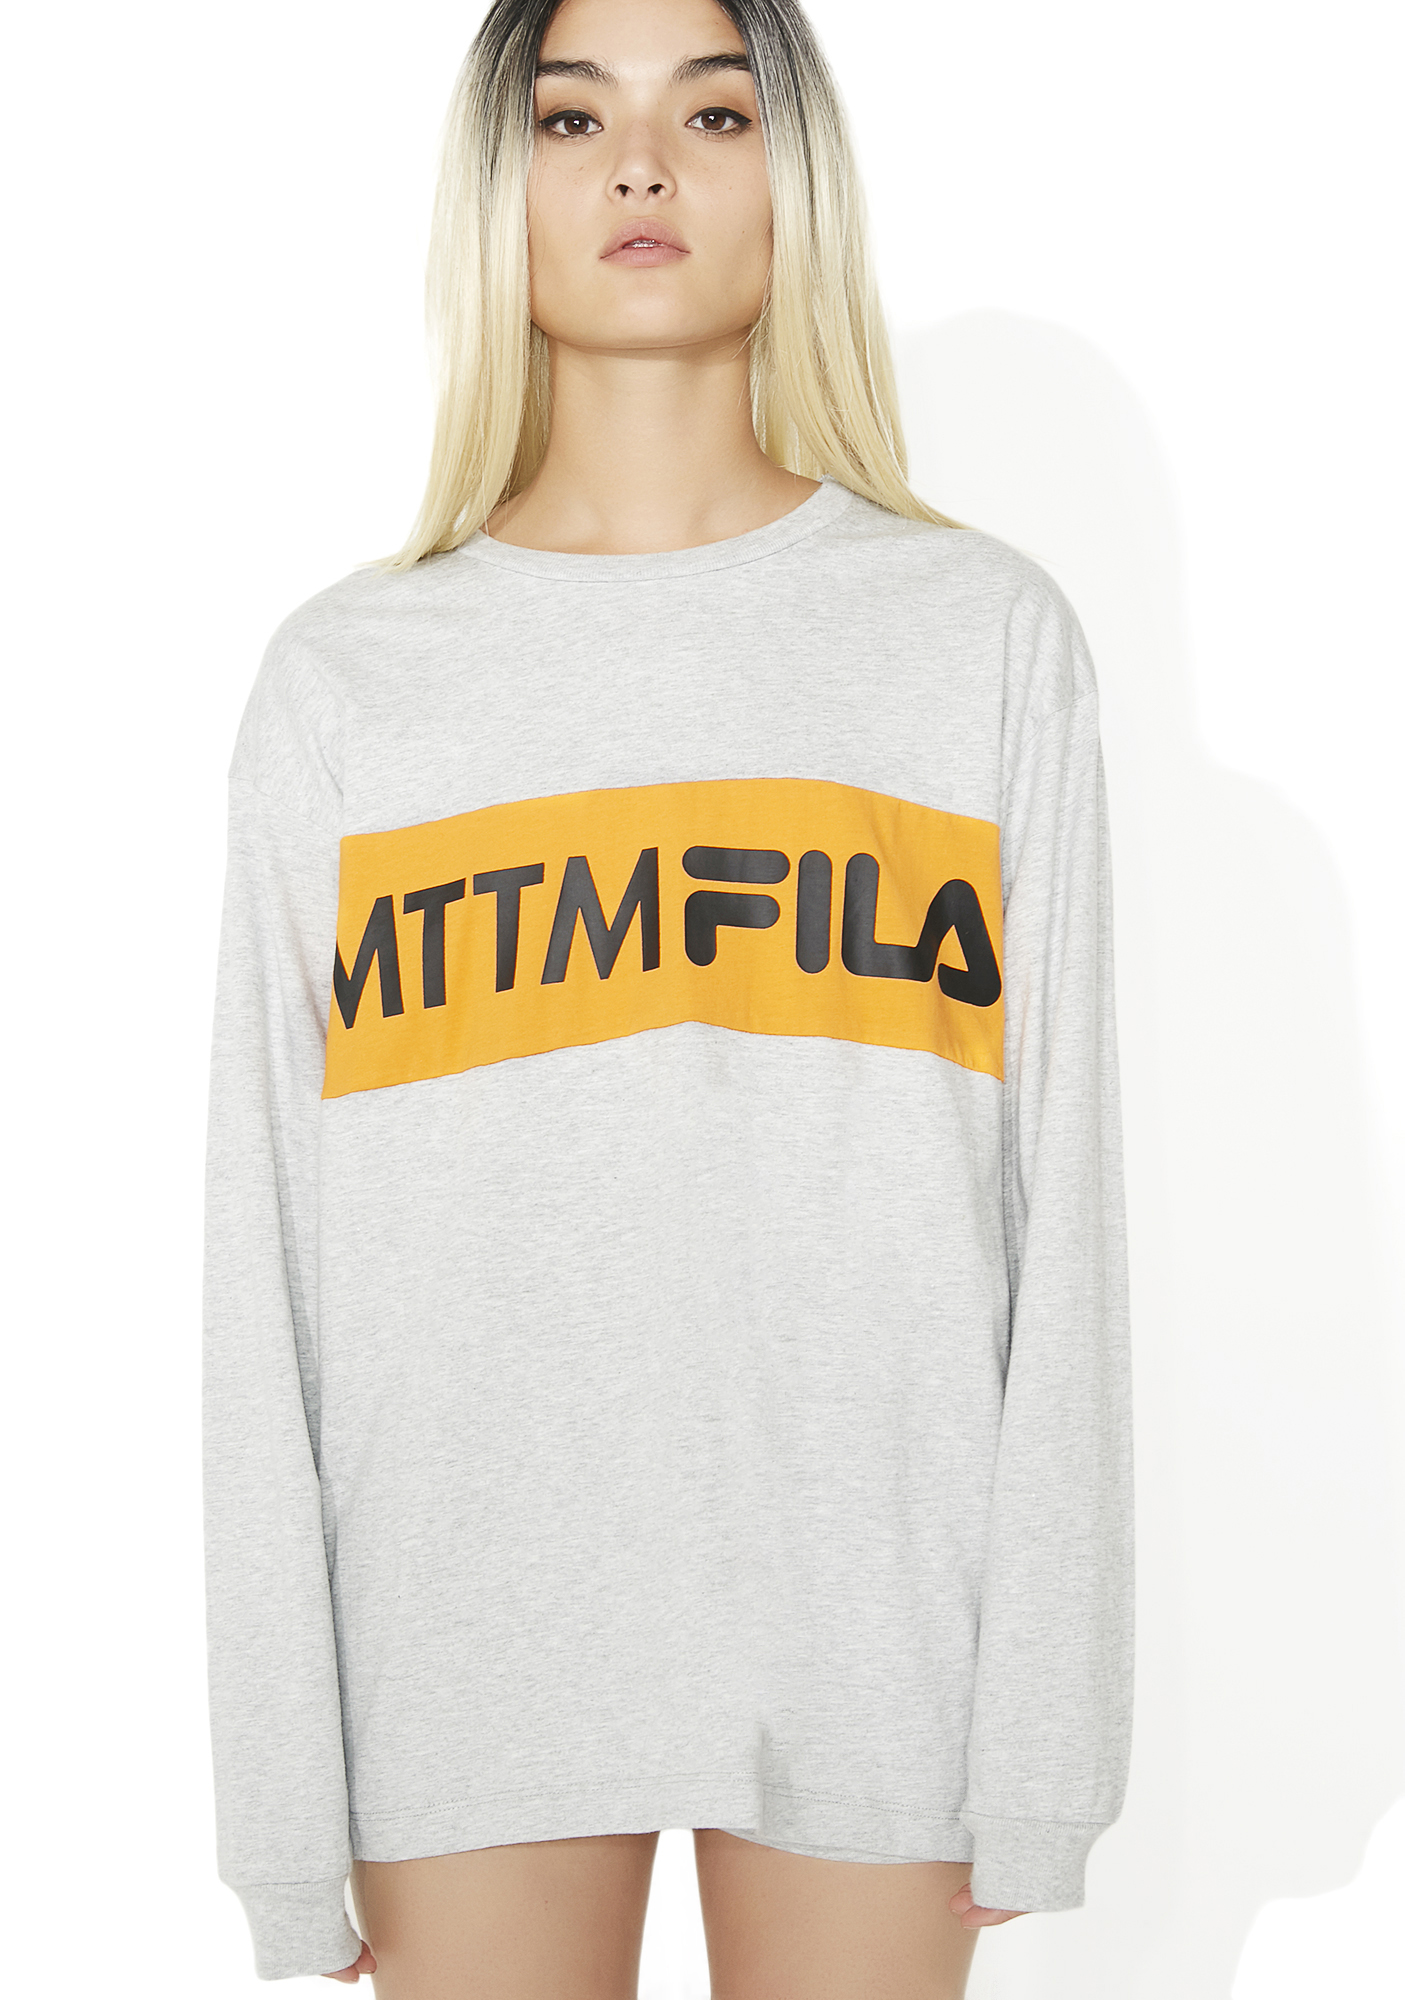 Married to the Mob First Place Long Sleeve Tee